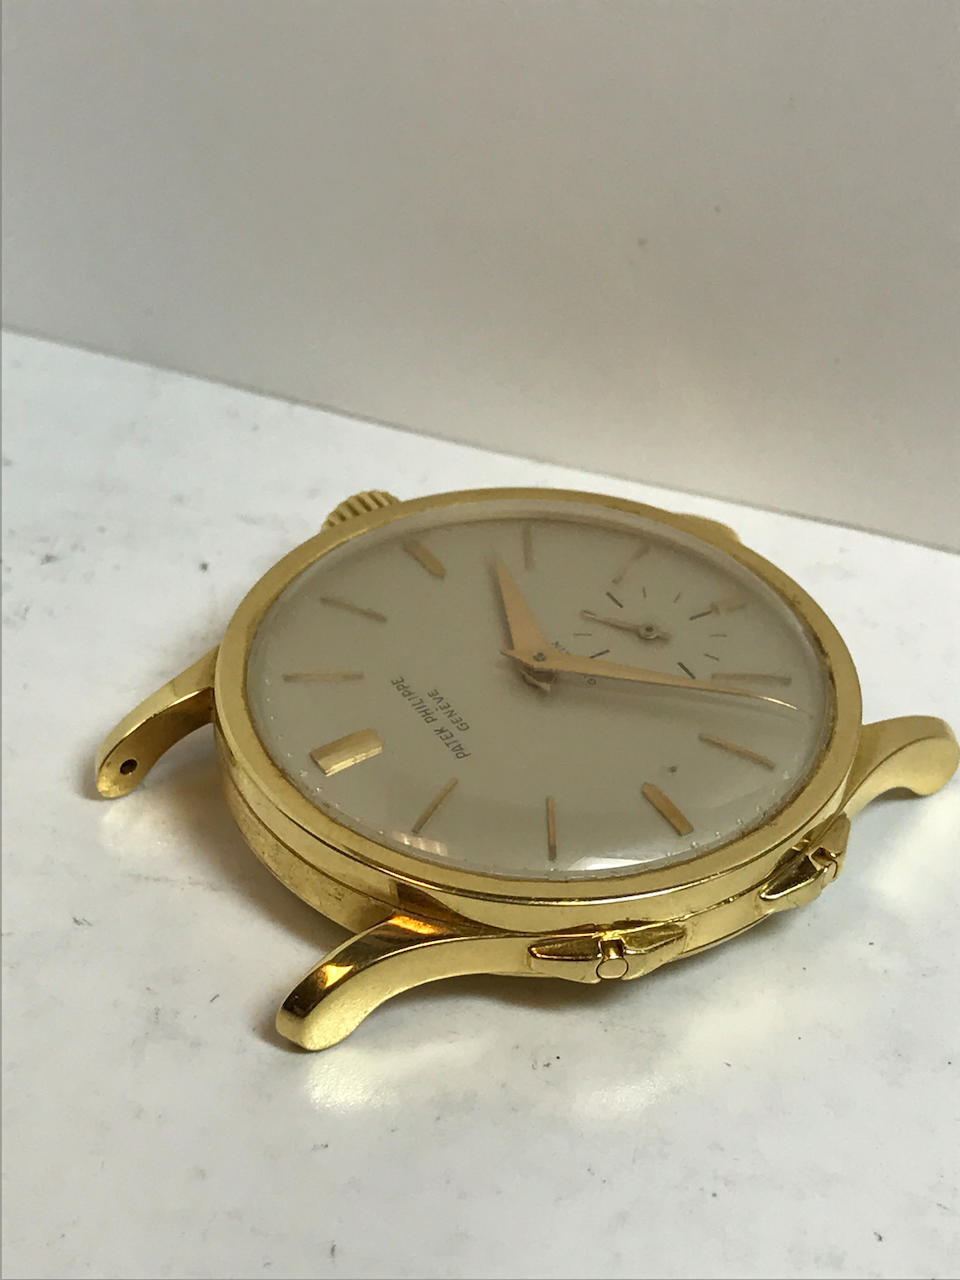 Patek Philippe. A fine and rare 18K gold dual time zone wristwatch with independently adjustable hour hand and an 18K gold braceletRetailed by Gübelin Ref: 2597, 1960